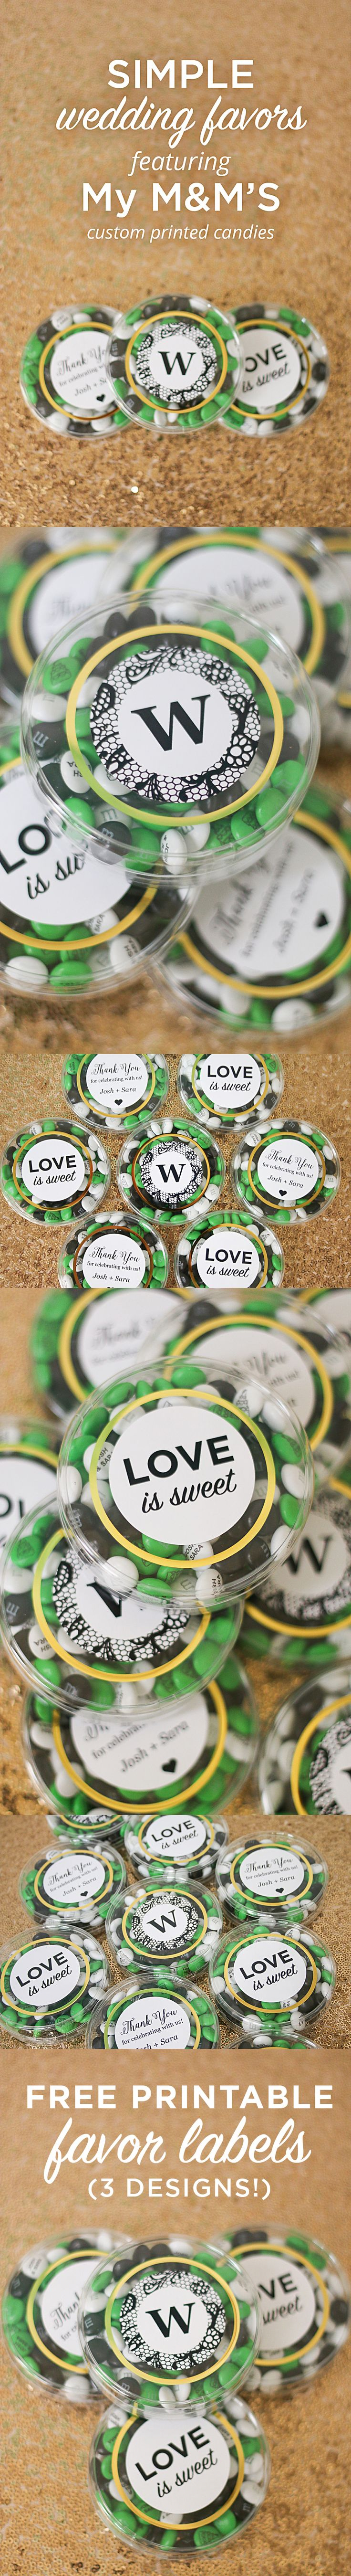 Simple wedding favors featuring @MY M&M'S - download the 3 FREE printable wedding favor labels on the blog! Customizable with Microsoft Word!! :)